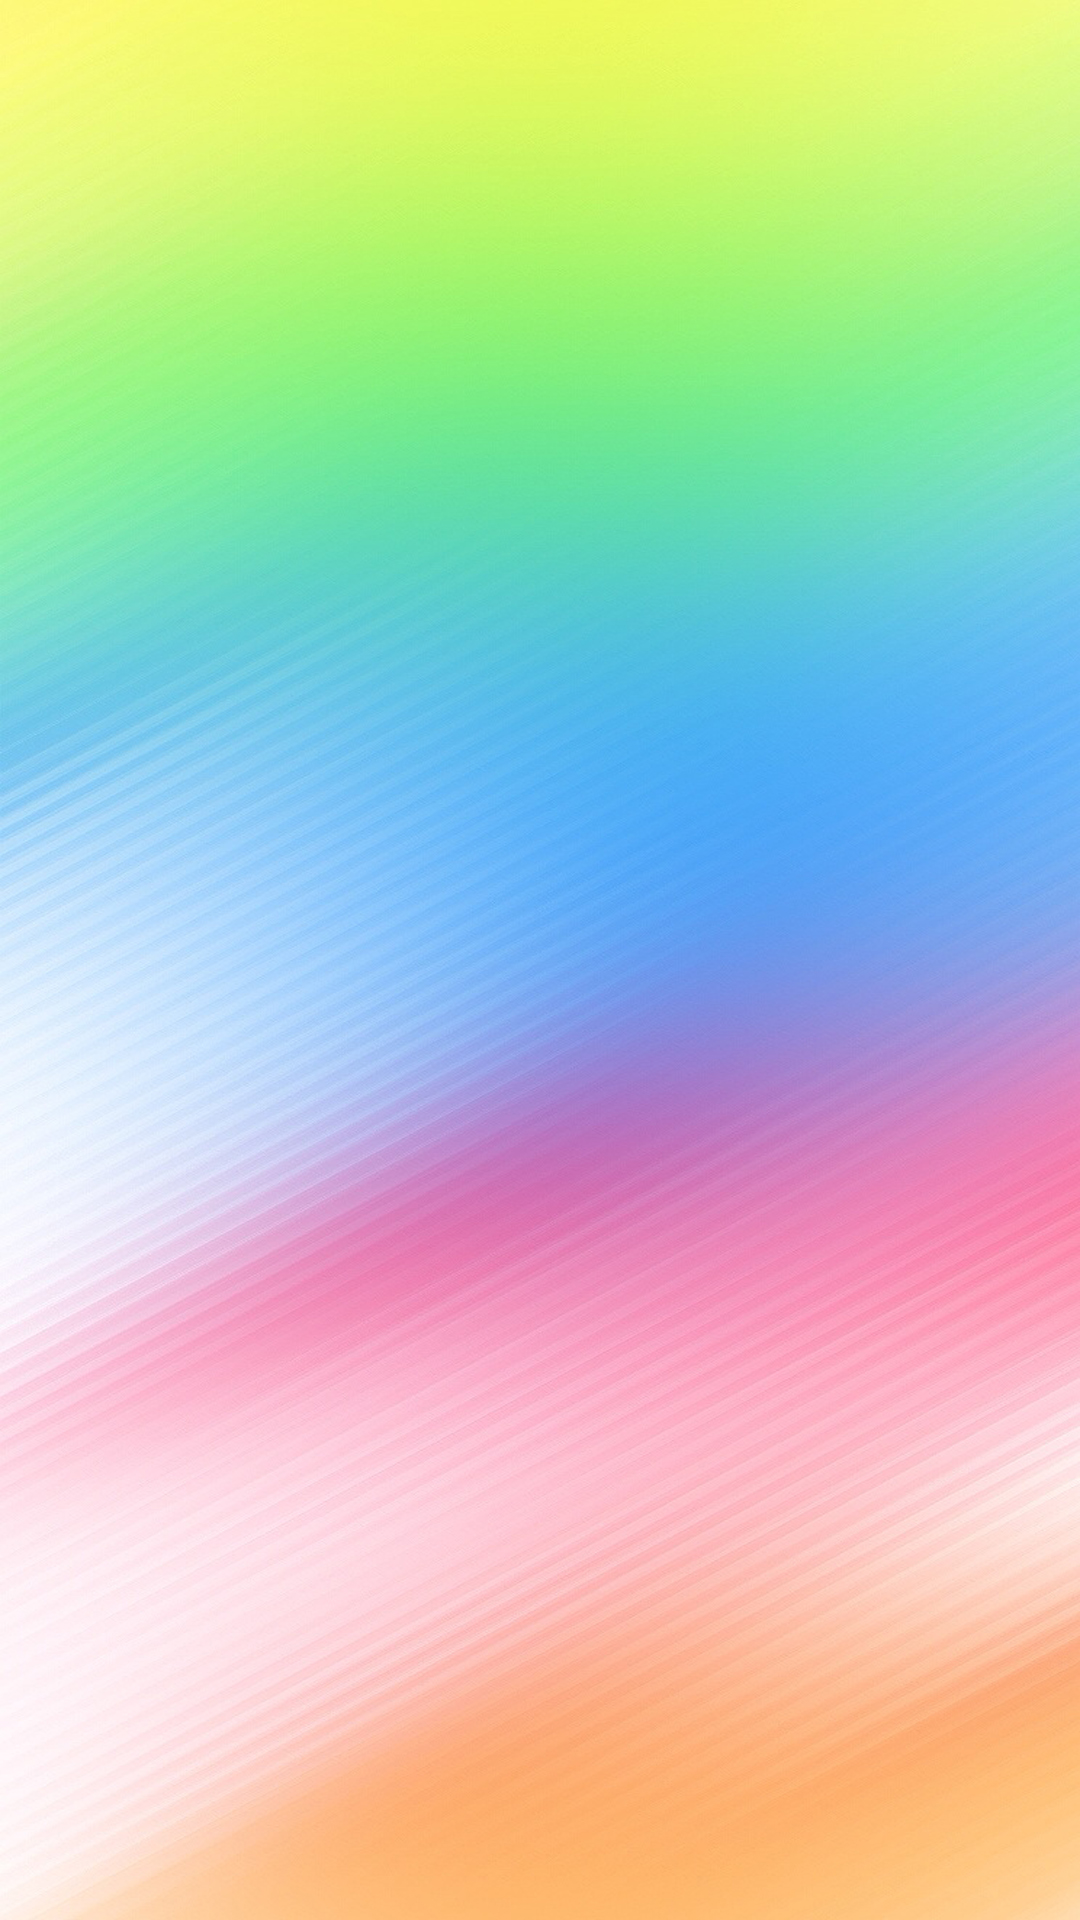 40 Free Ios 8 Wallpaper On Wallpapersafari